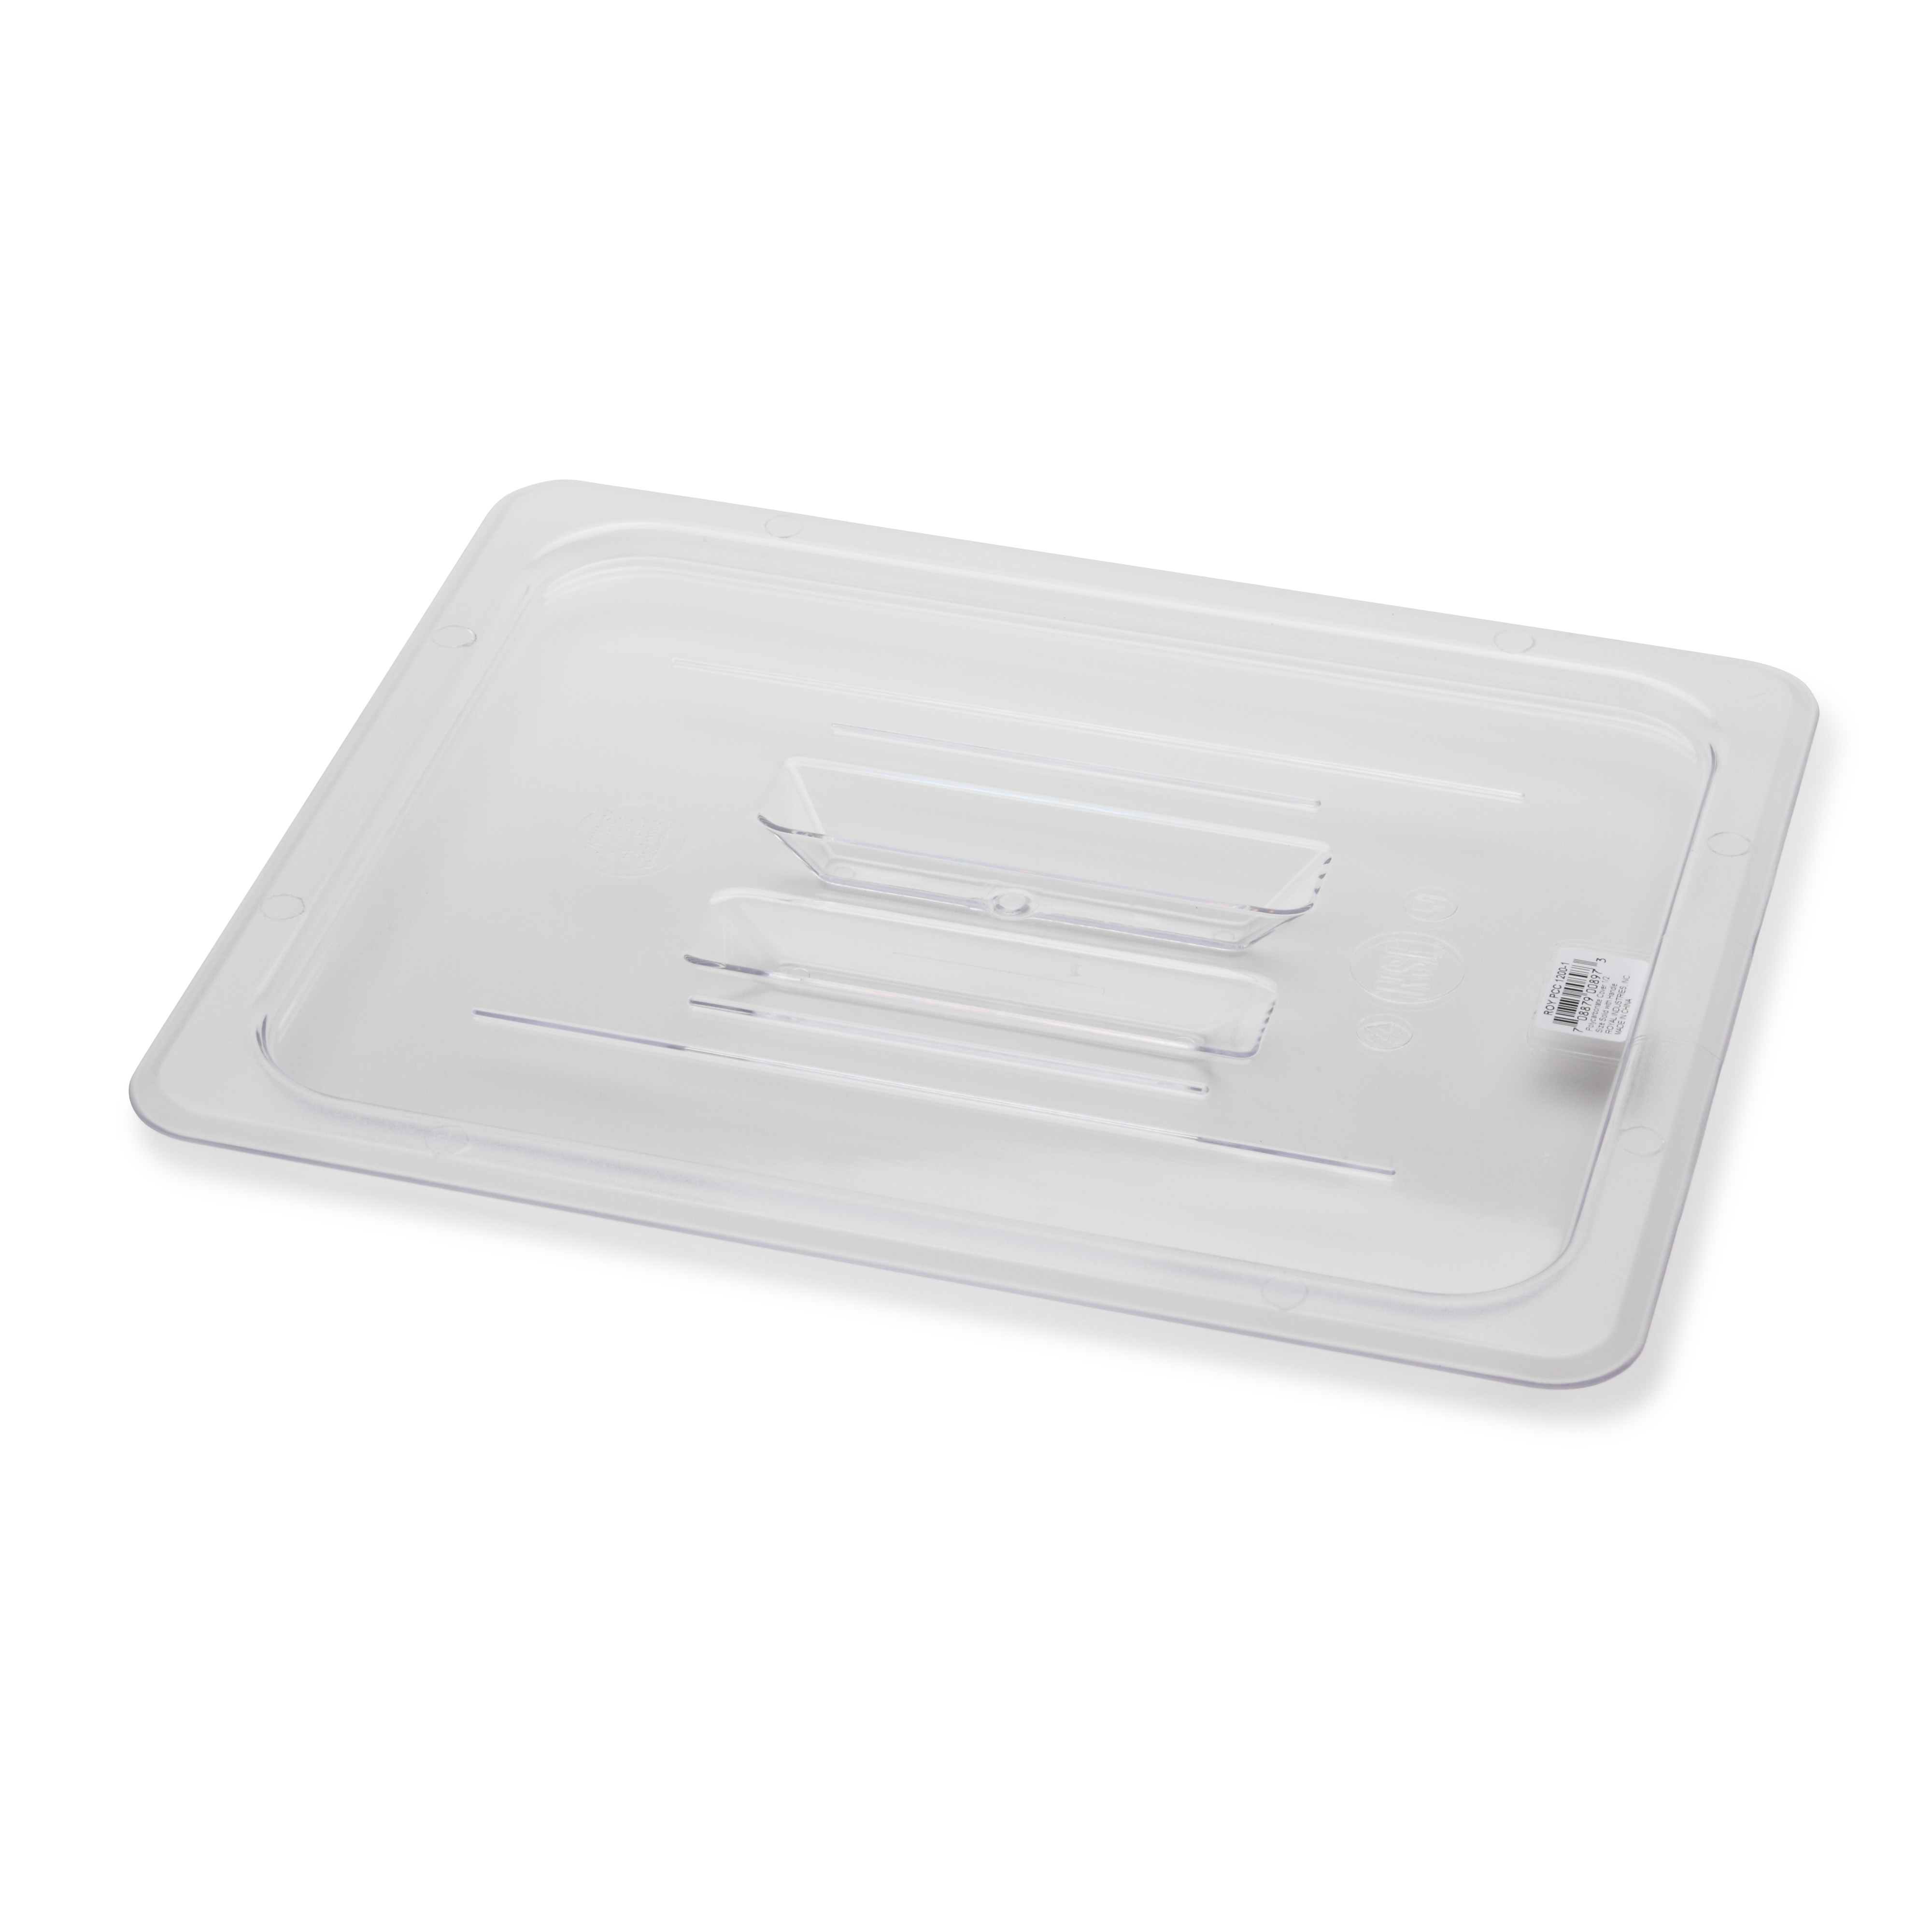 Royal Industries ROY PCC 1200-1 food pan cover, plastic